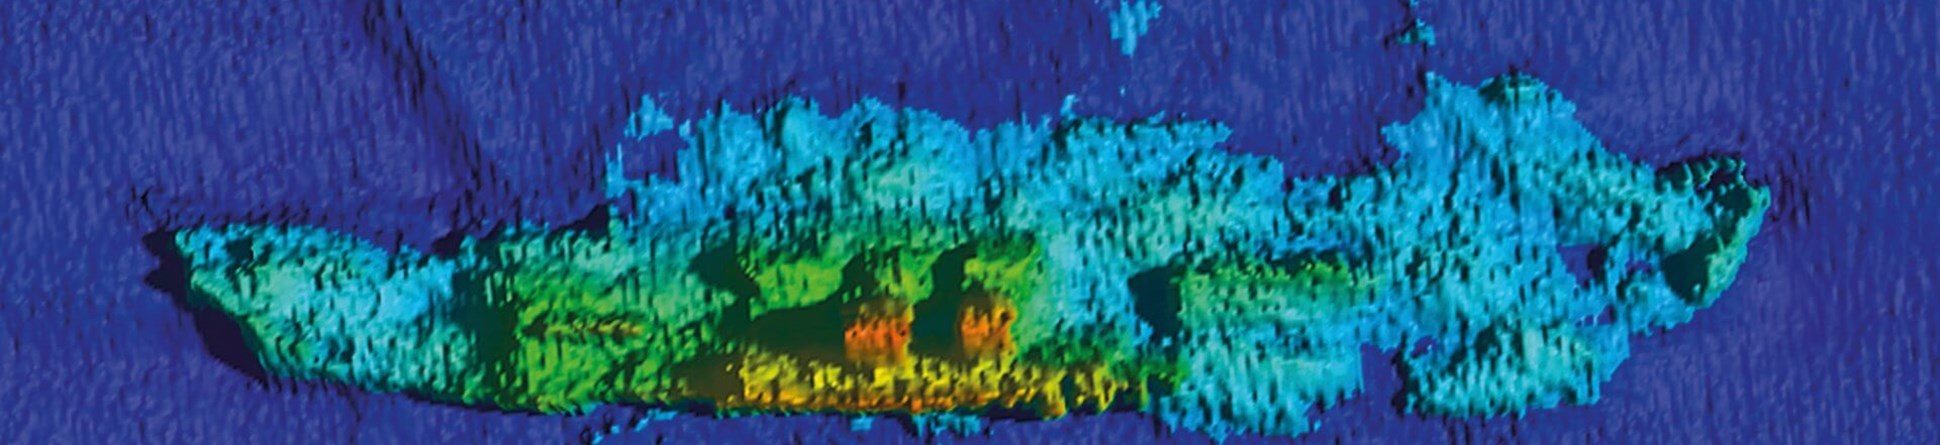 Sonar scan of the wreck of the SS Mendi lying off the Isle of Wight